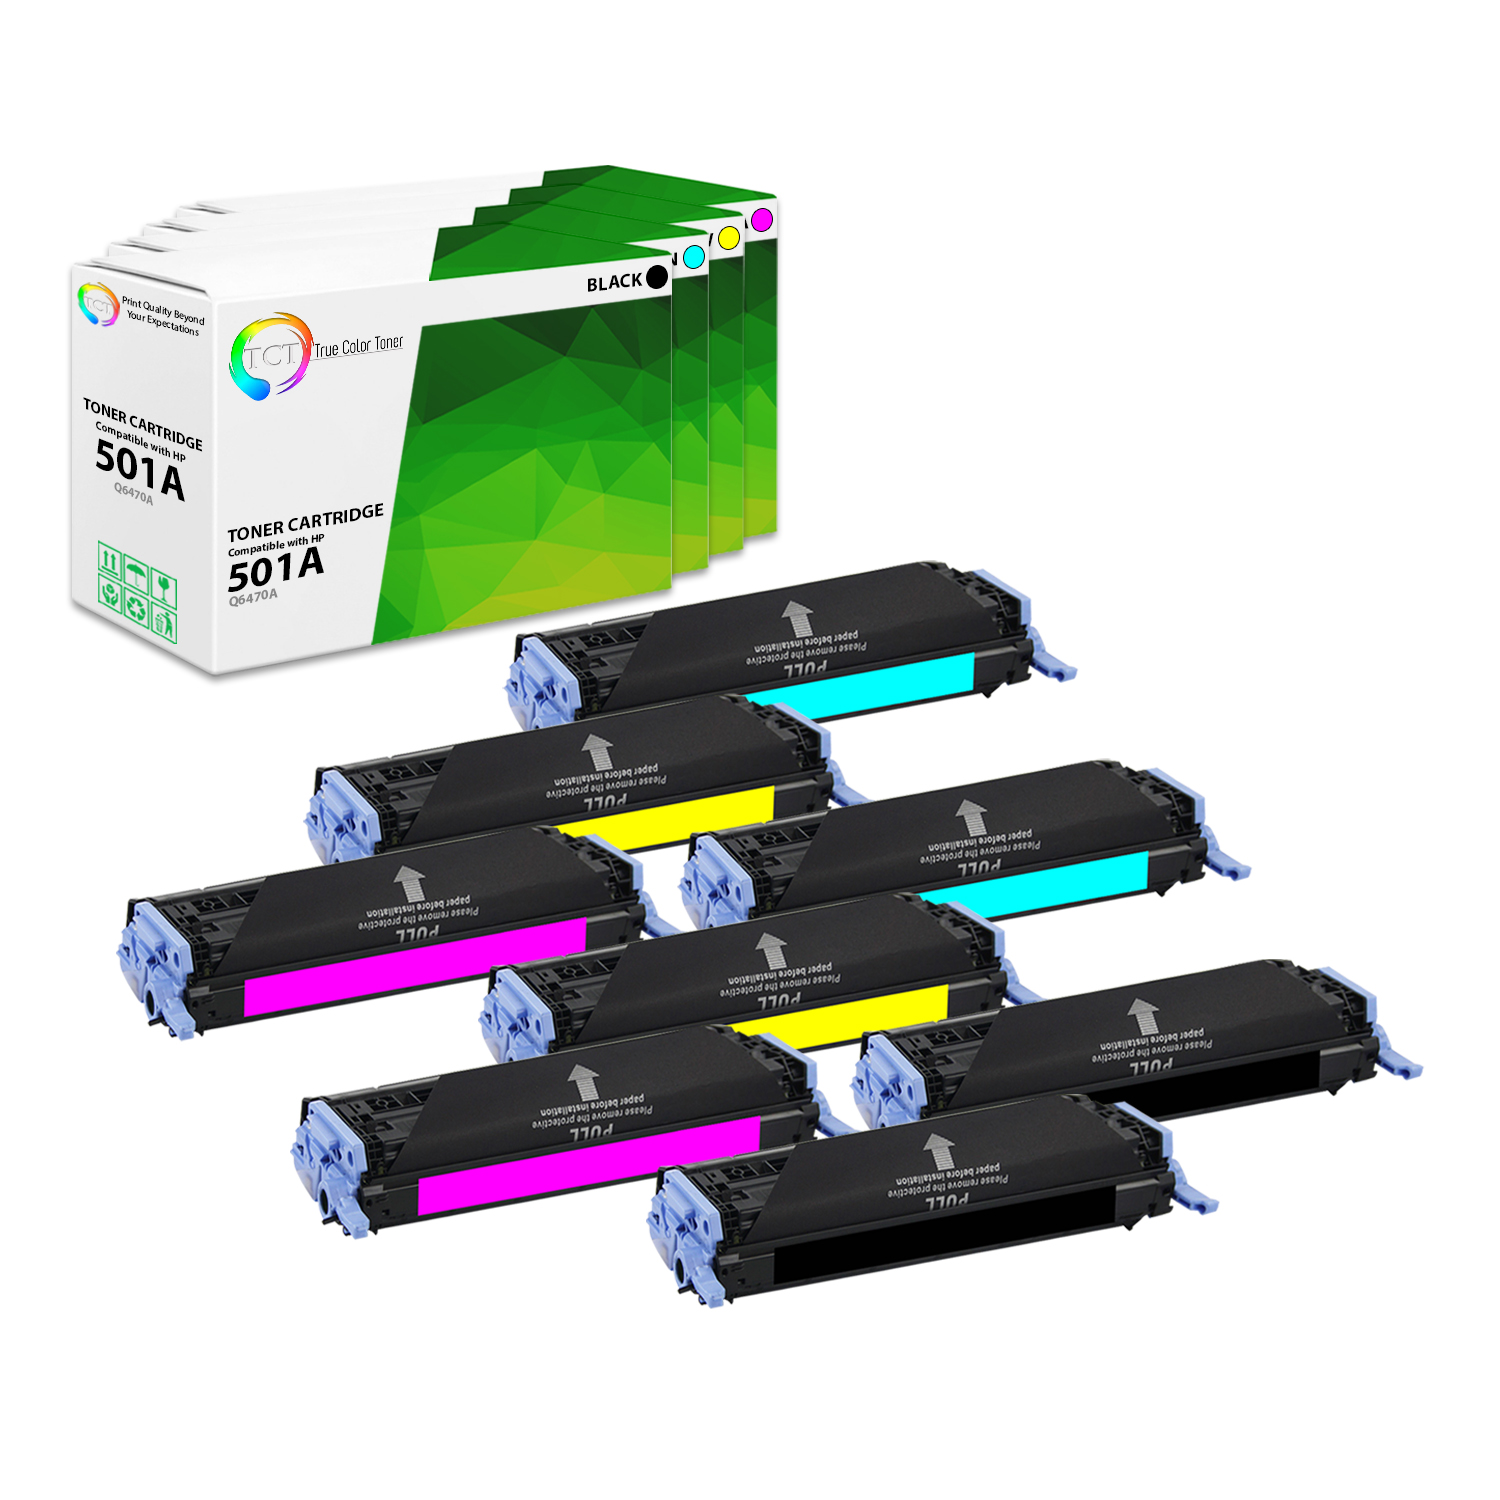 GENUINE HP Q6470A 501A BLACK TONER CARTRIDGE LASER JET 3600 BRAND NEW